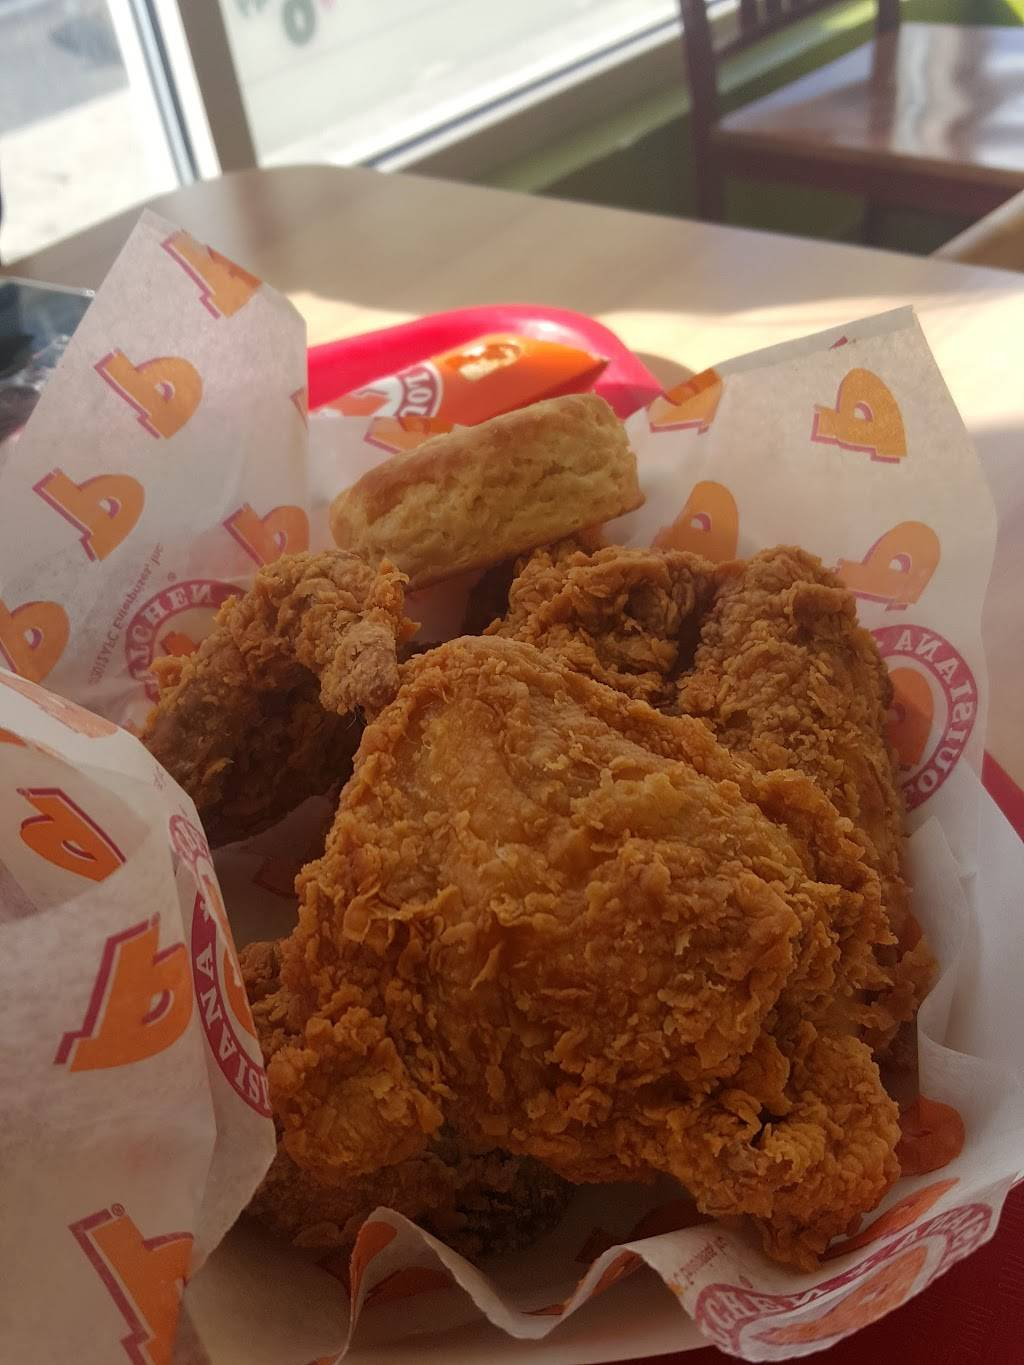 Popeyes Louisiana Kitchen | restaurant | 1251 S Halsted St, Chicago, IL 60607, USA | 3122437711 OR +1 312-243-7711